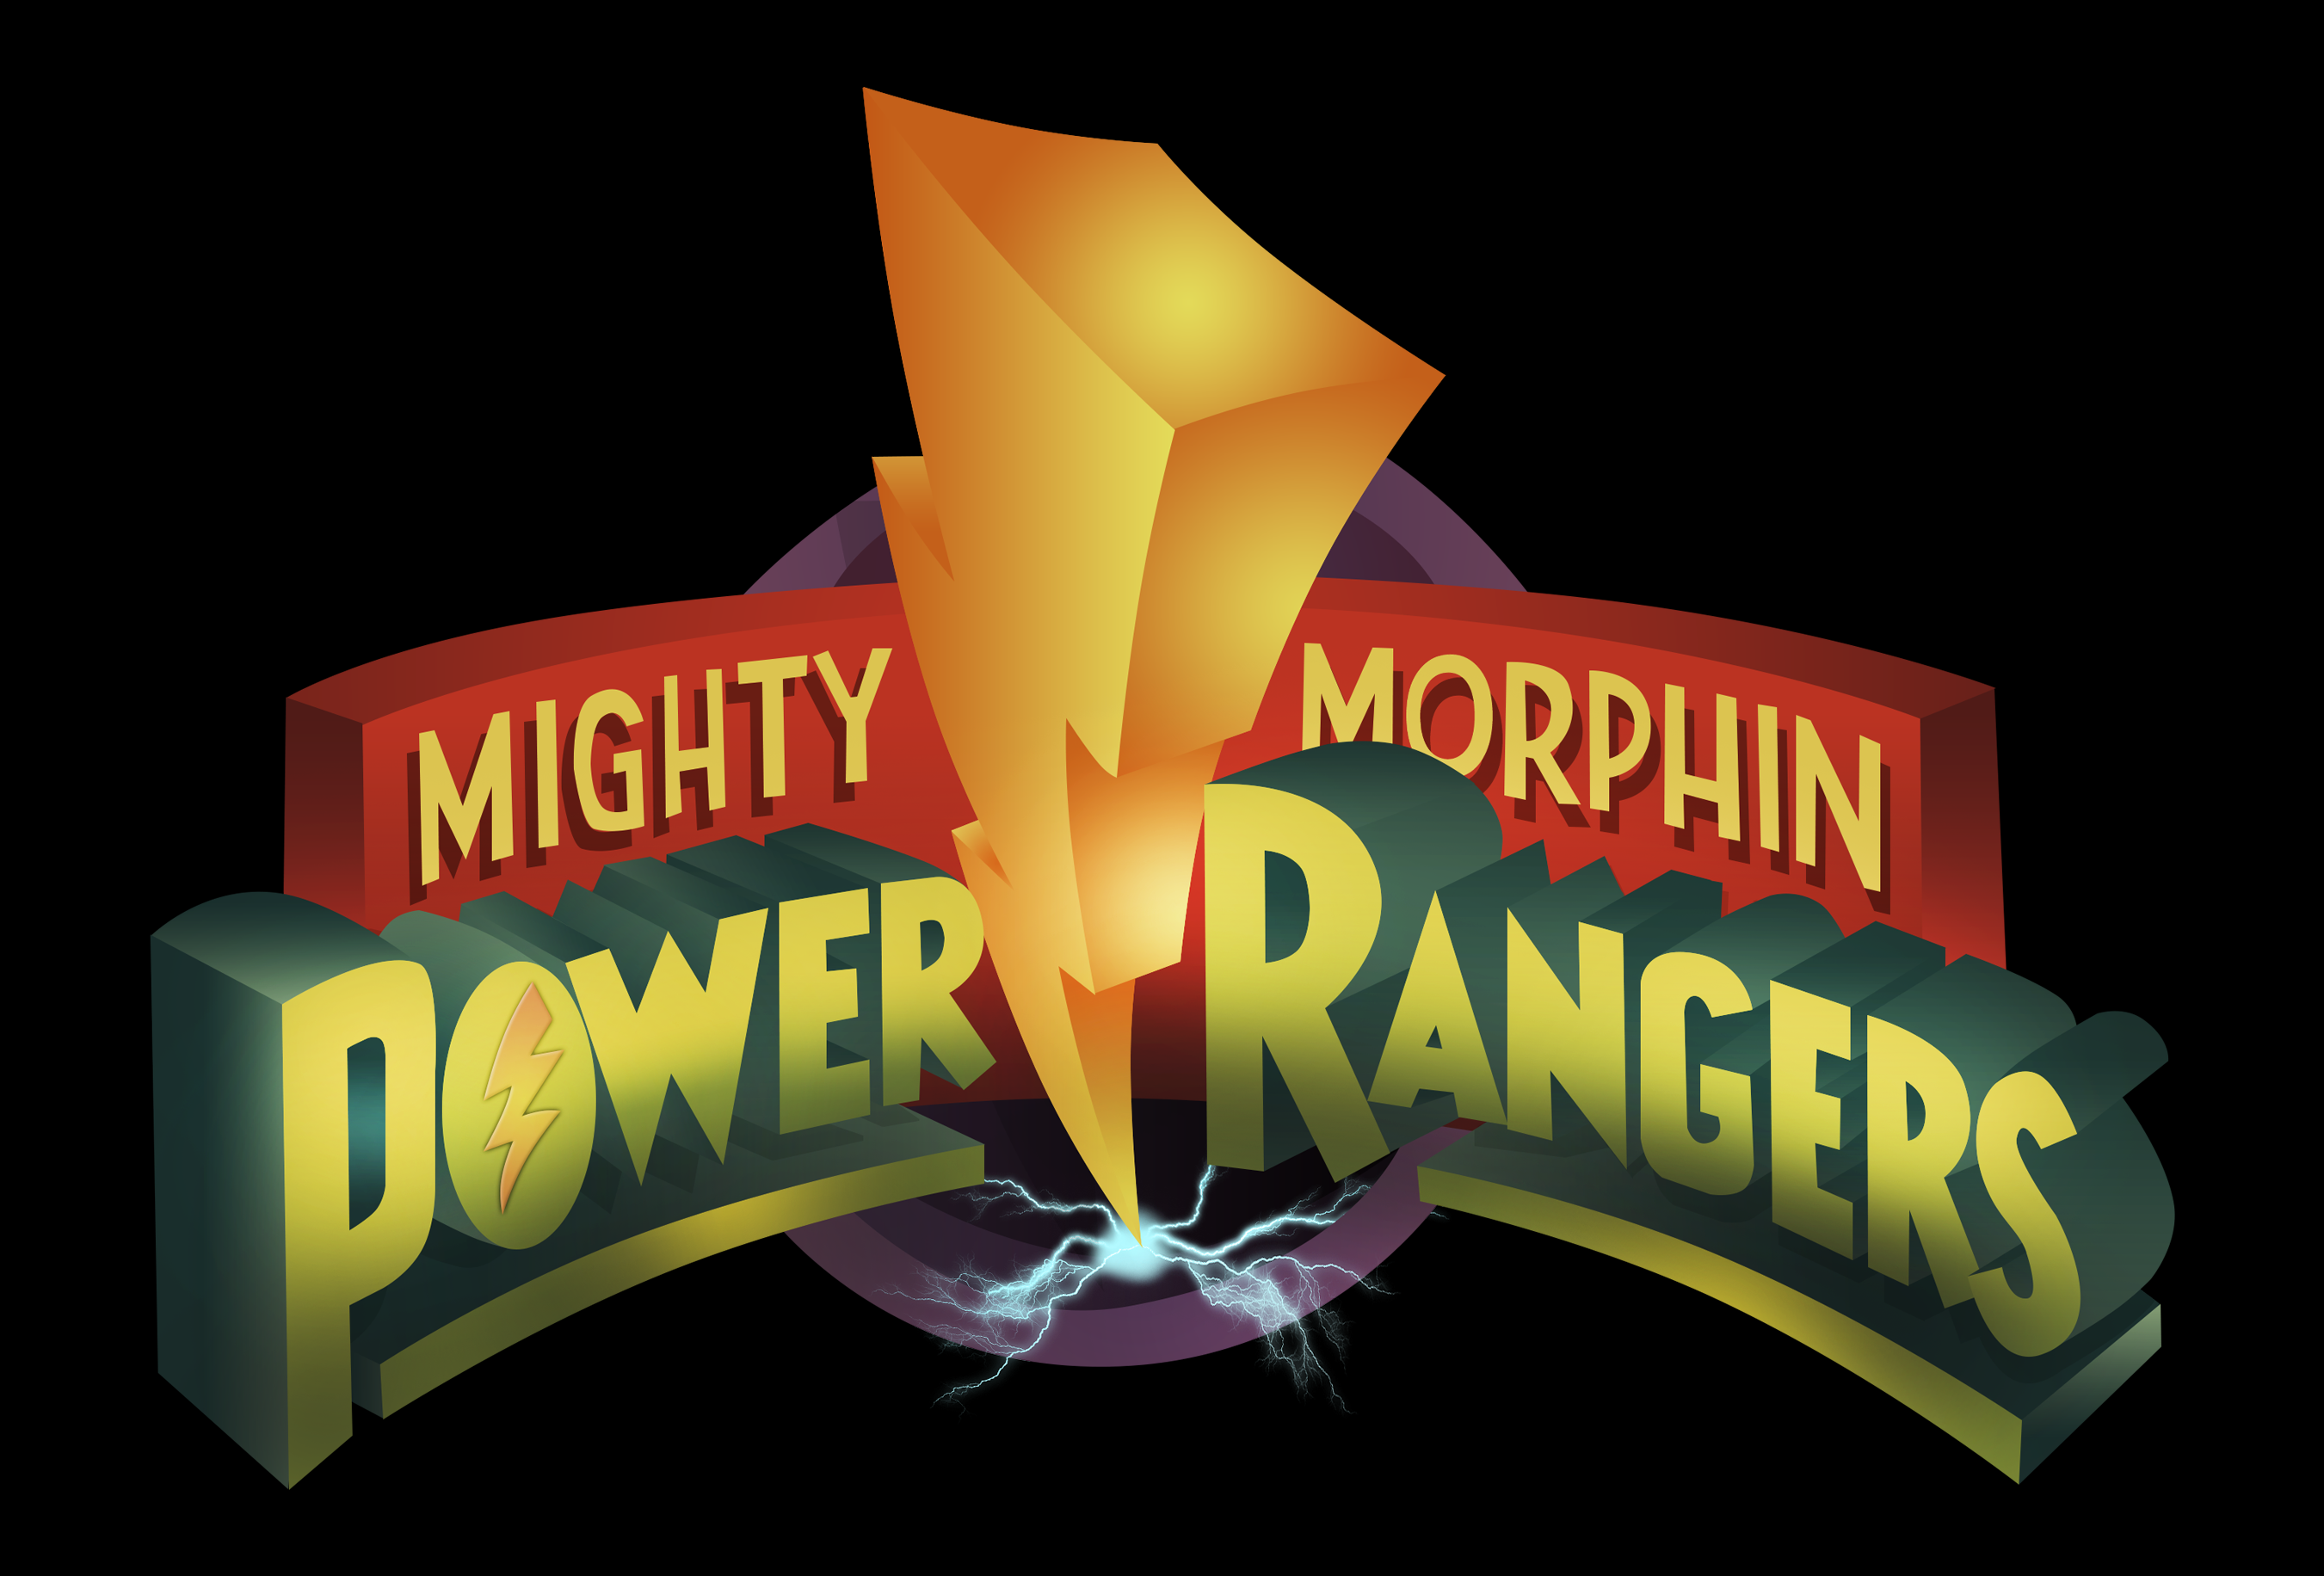 Power rangers logo png clipart clipart library stock Power rangers logo clipart - ClipartFest clipart library stock